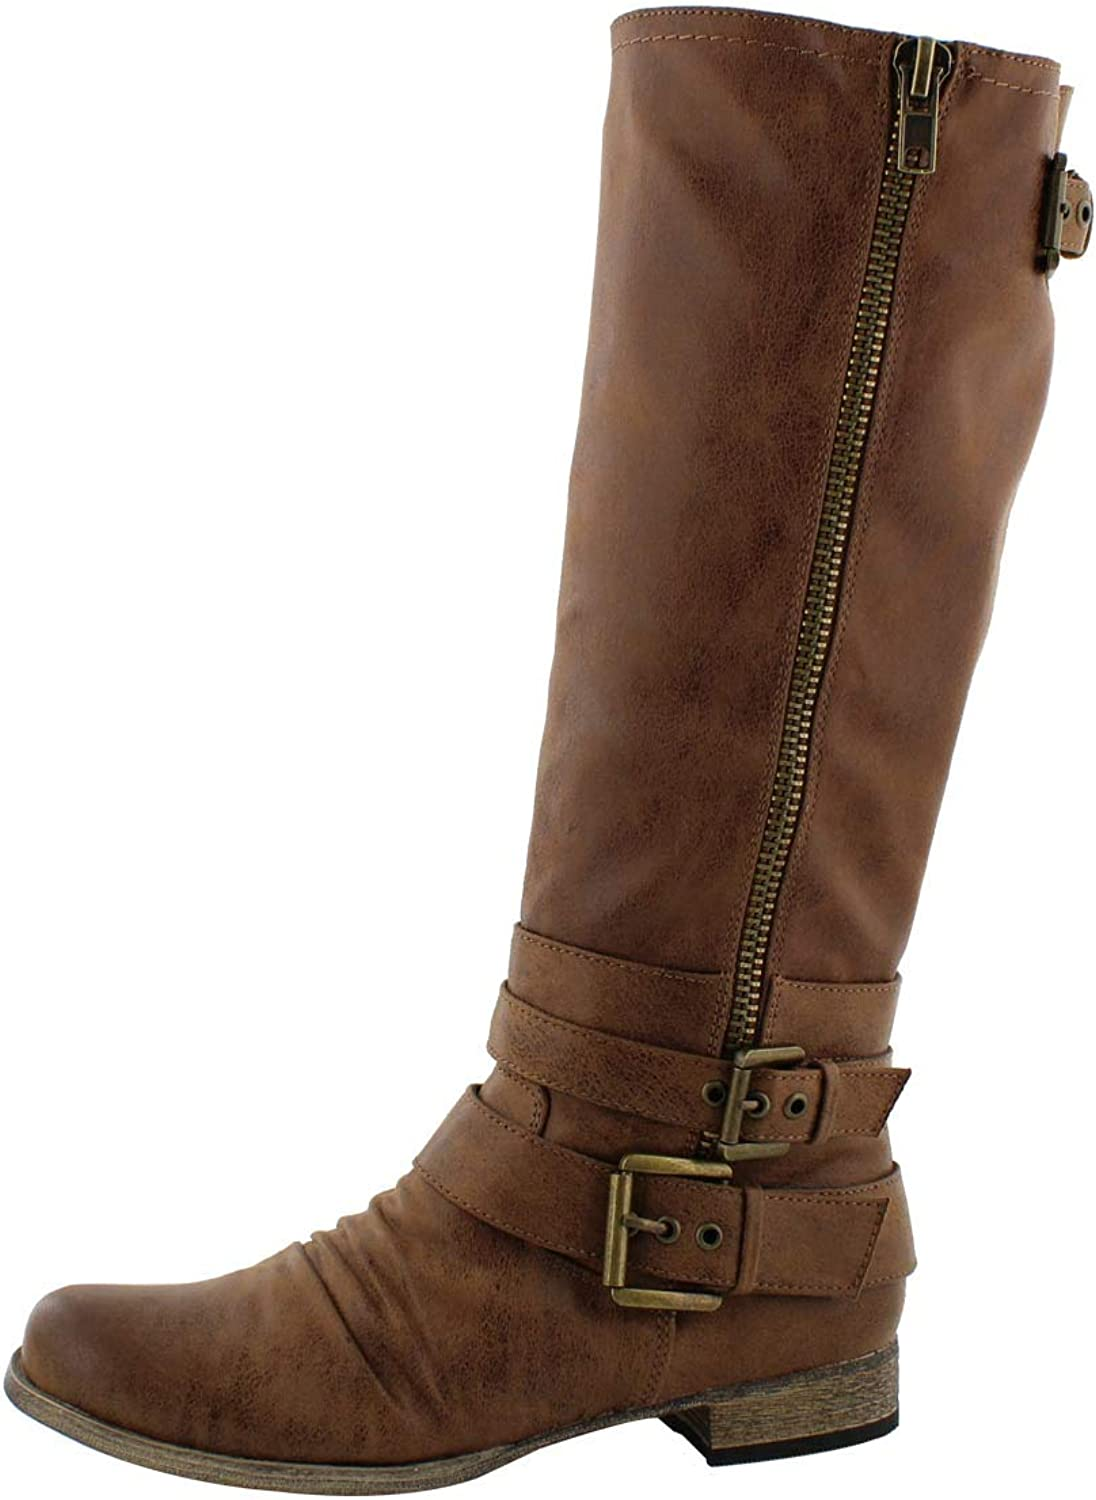 SoftMoc Women's Triss Riding Boot